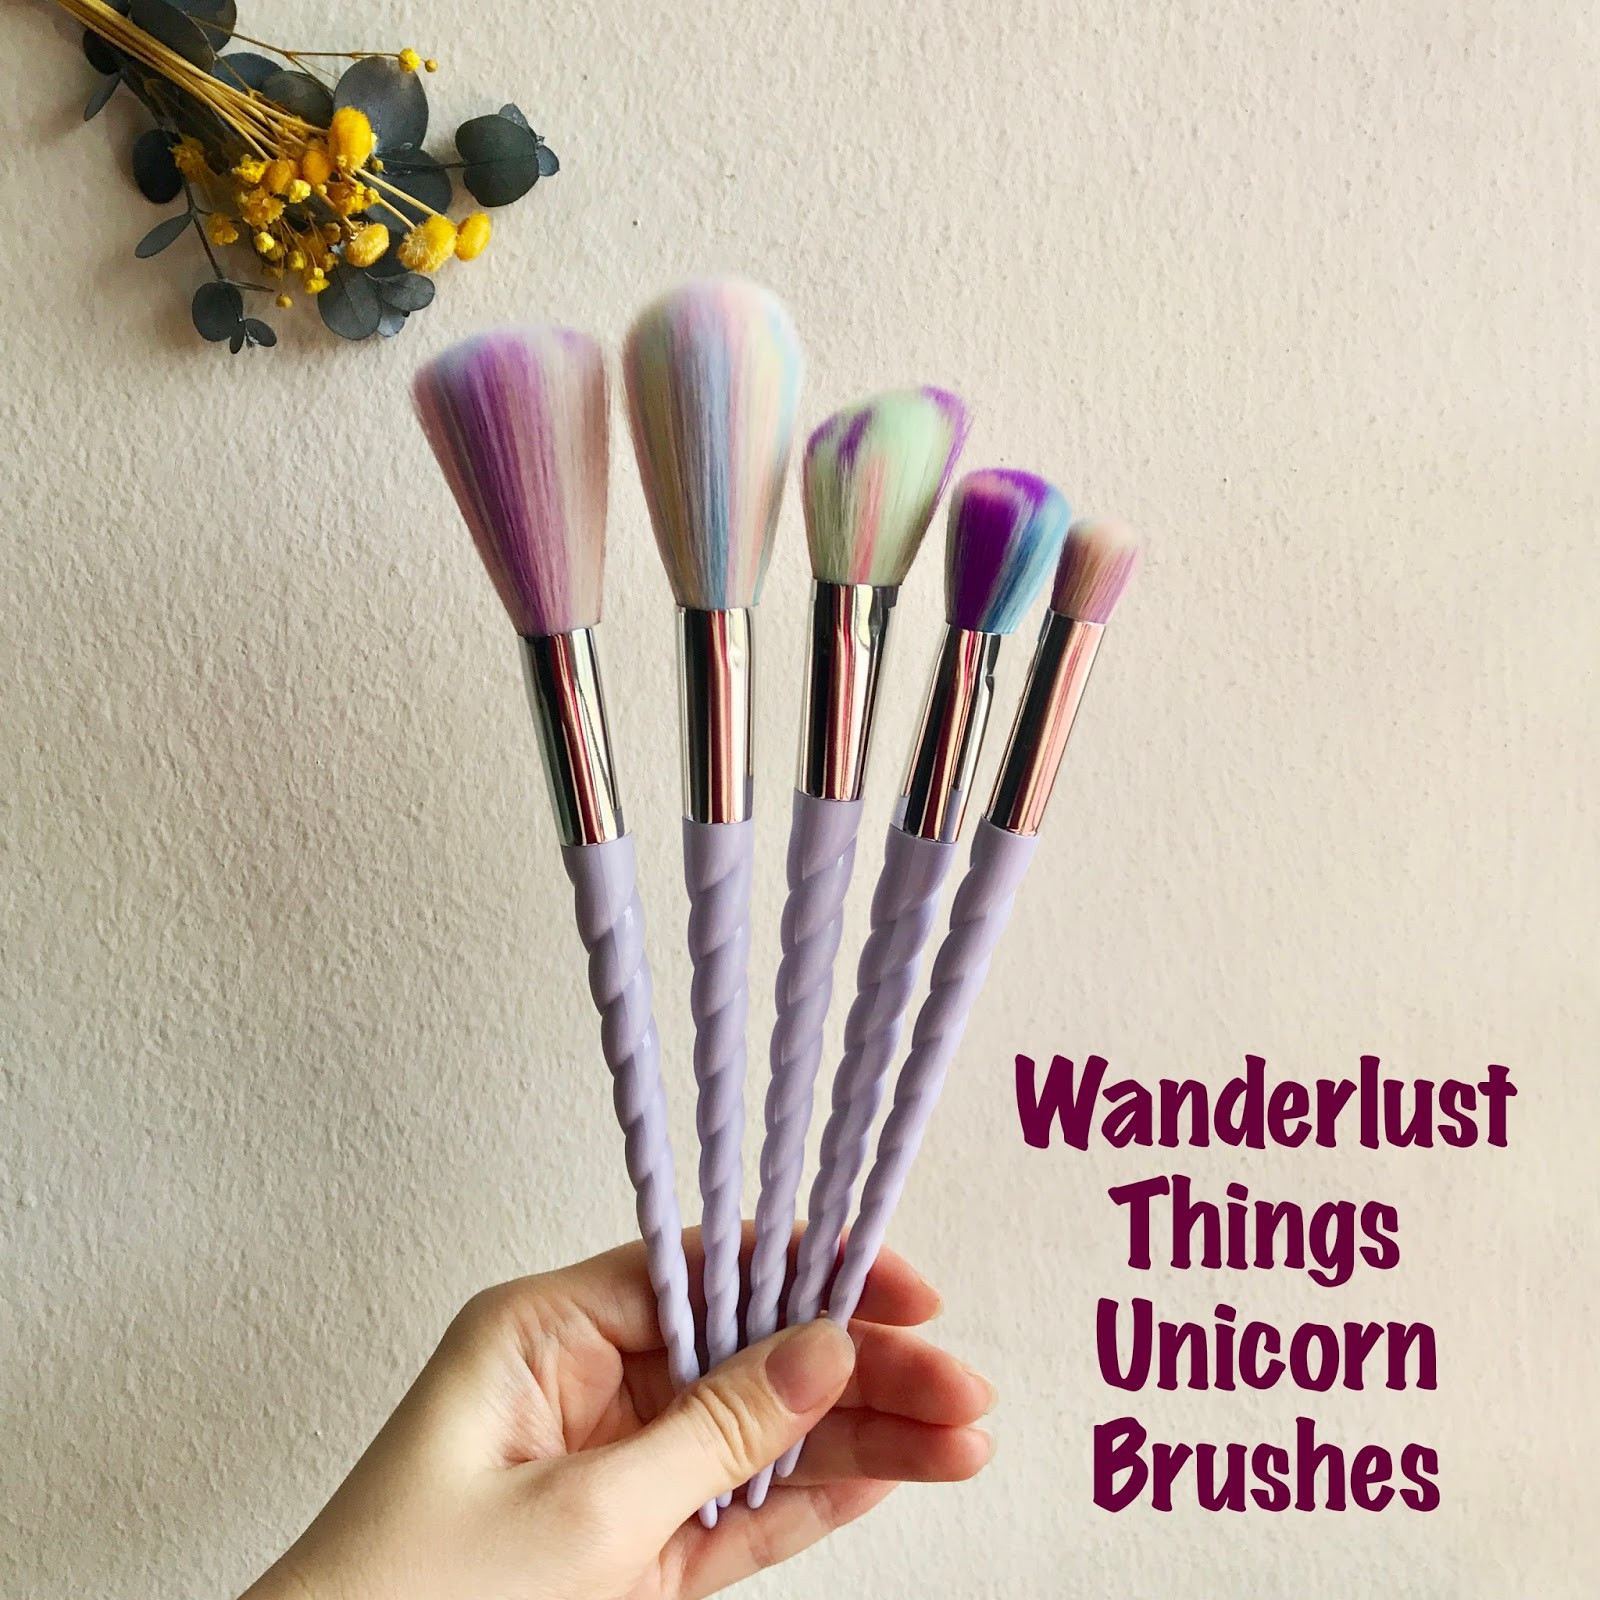 Soft and Fluffy Unicorn Brushes from Wanderlust Things